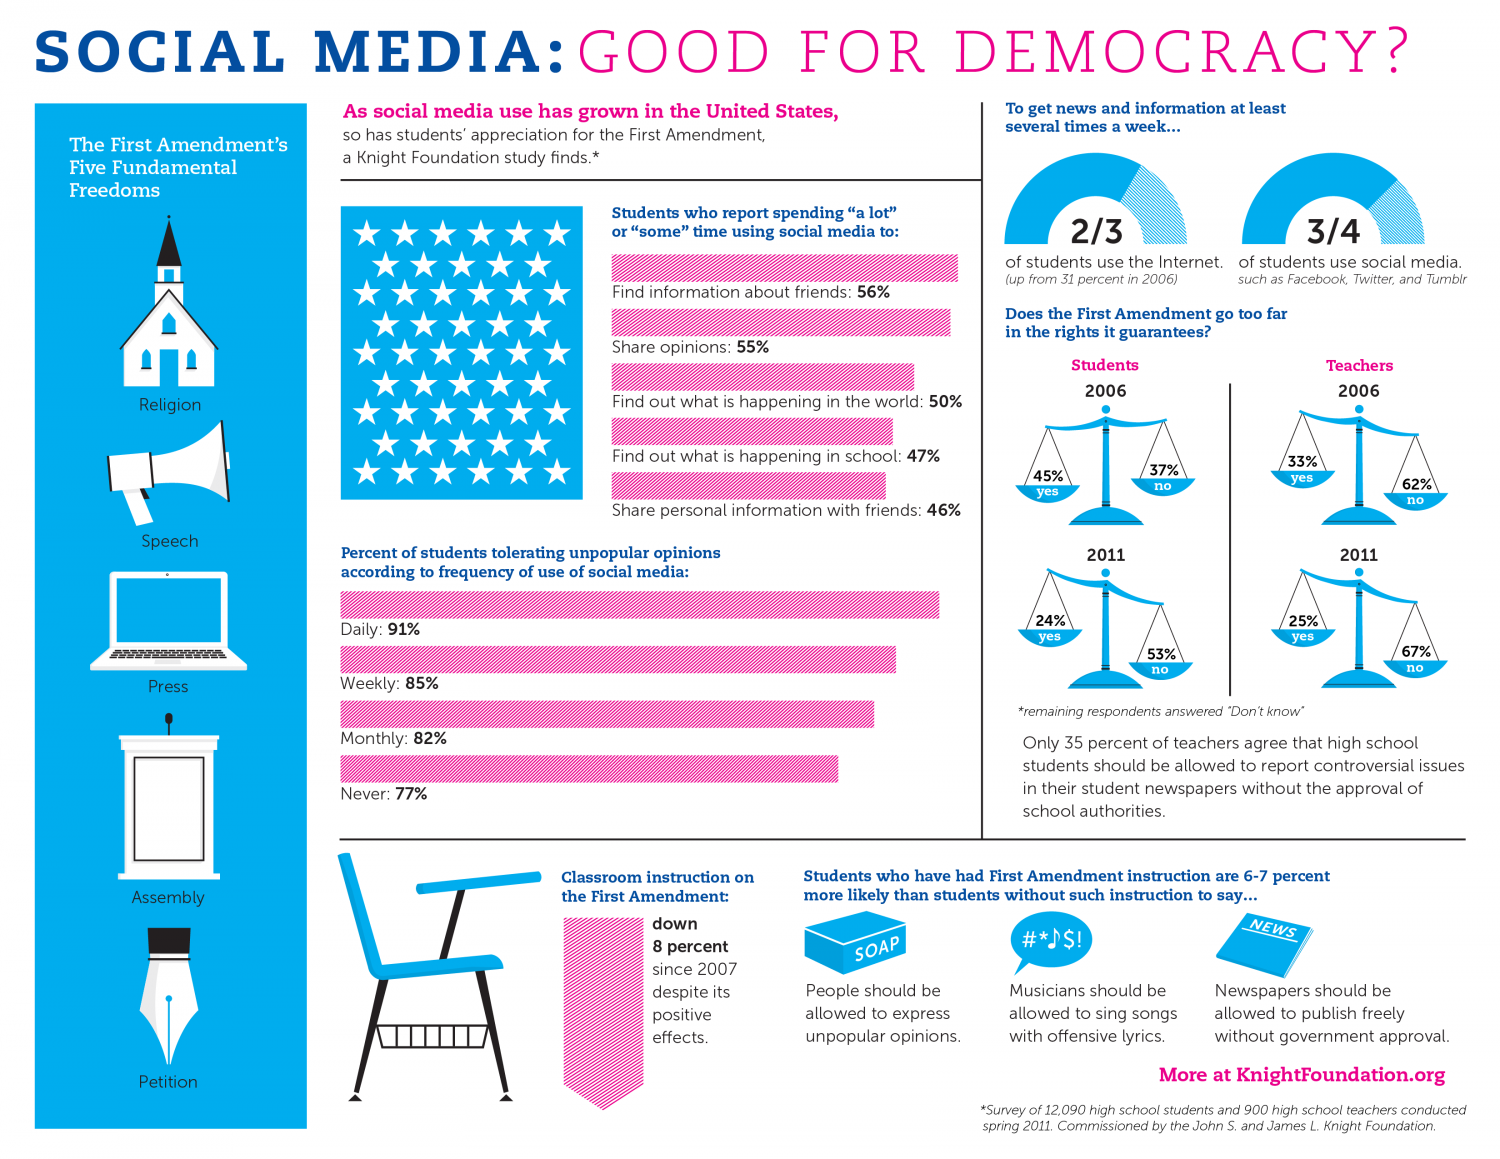 Twitter, Facebook and Co: Good for Teens and the First Amendment? Infographic